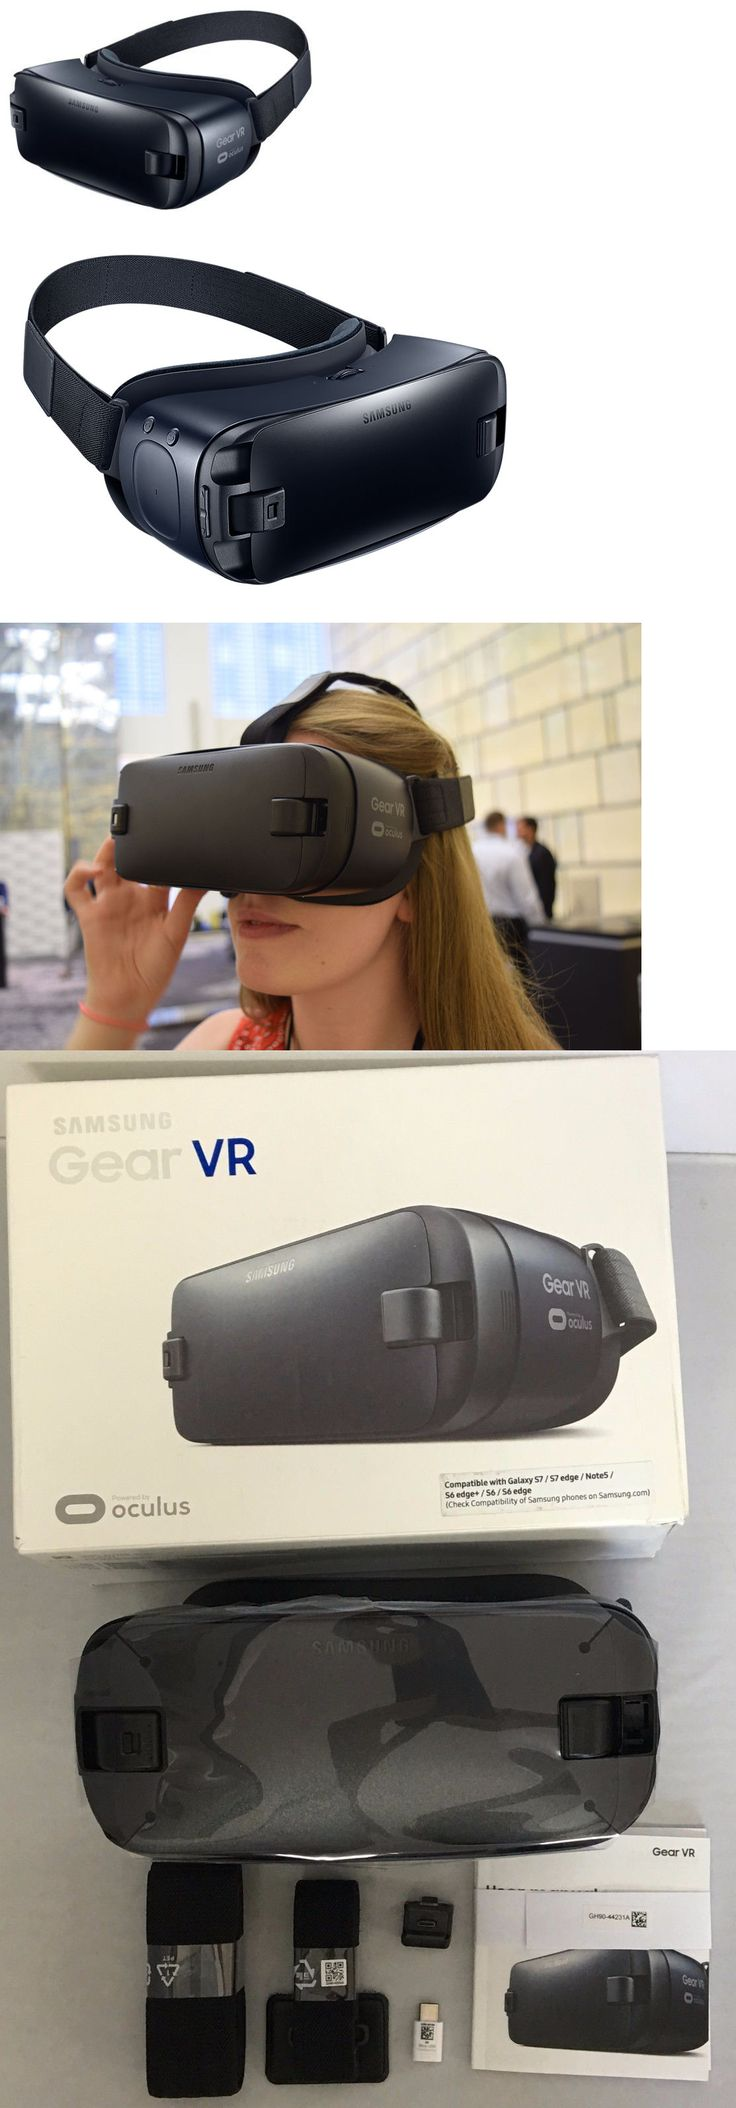 Smartphone VR Headsets: Samsung Gear Vr 2 Oculus Virtual Reality 2016 3D Usb-C Note 5 Galaxy S6 S7 Edge+ -> BUY IT NOW ONLY: $36.99 on eBay!